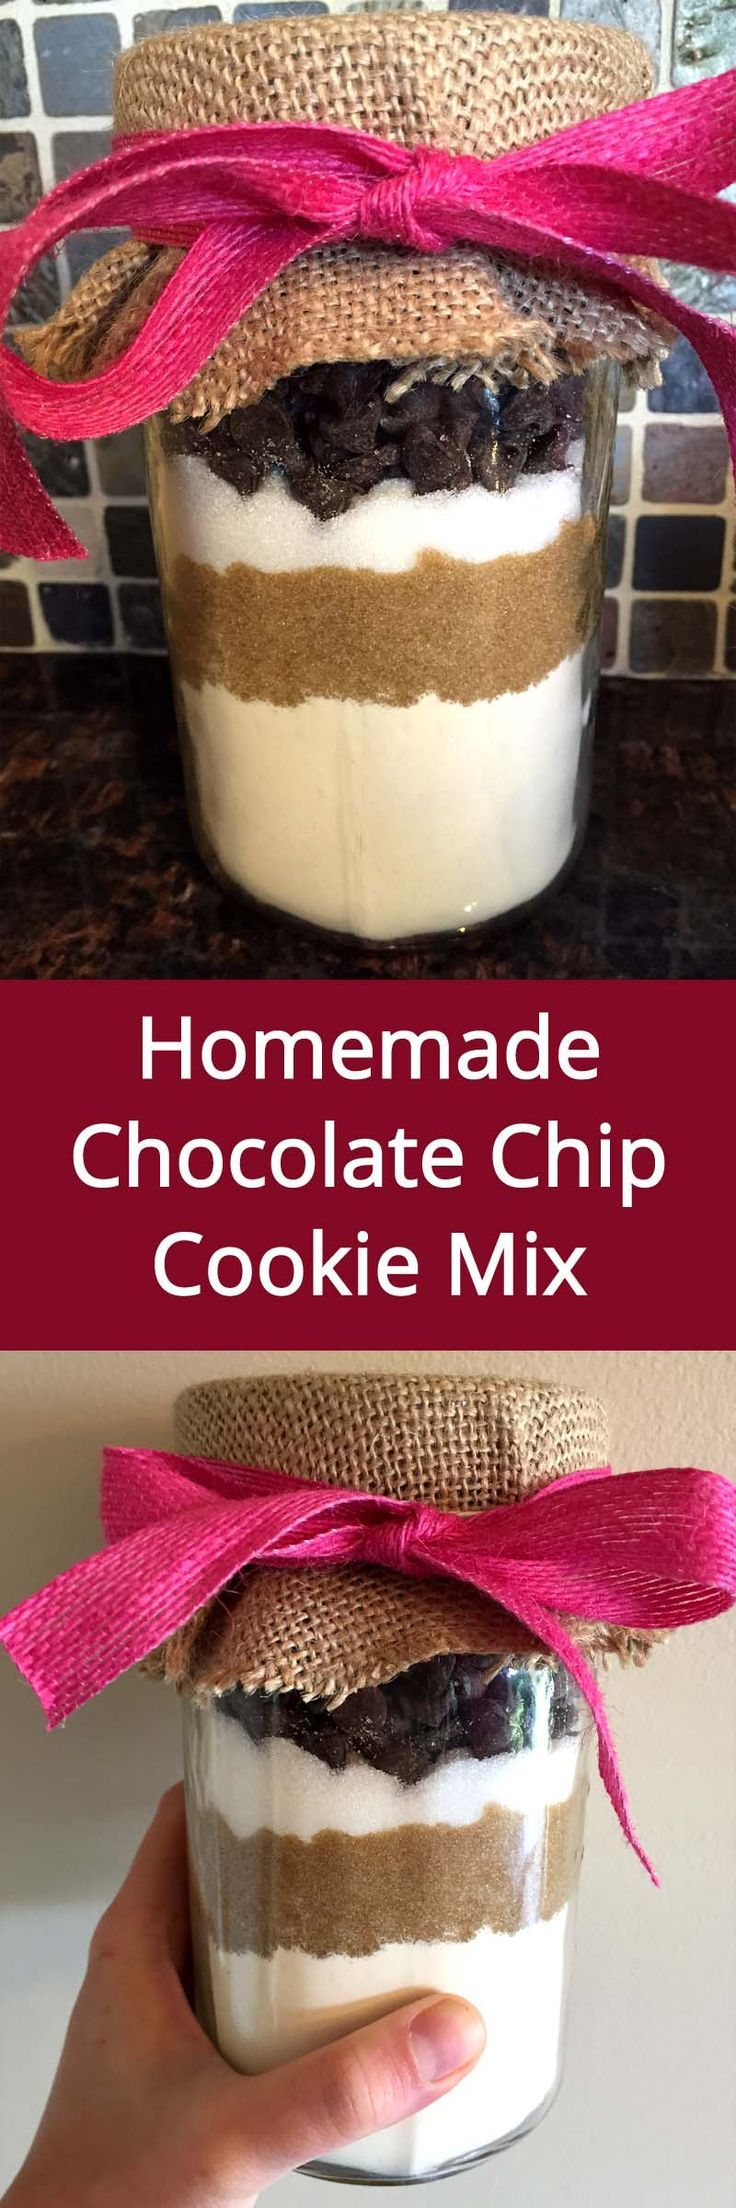 Homemade Chocolate Chip Cookie Mix In A Jar - awesome gift idea! (from MelanieCooks.com)